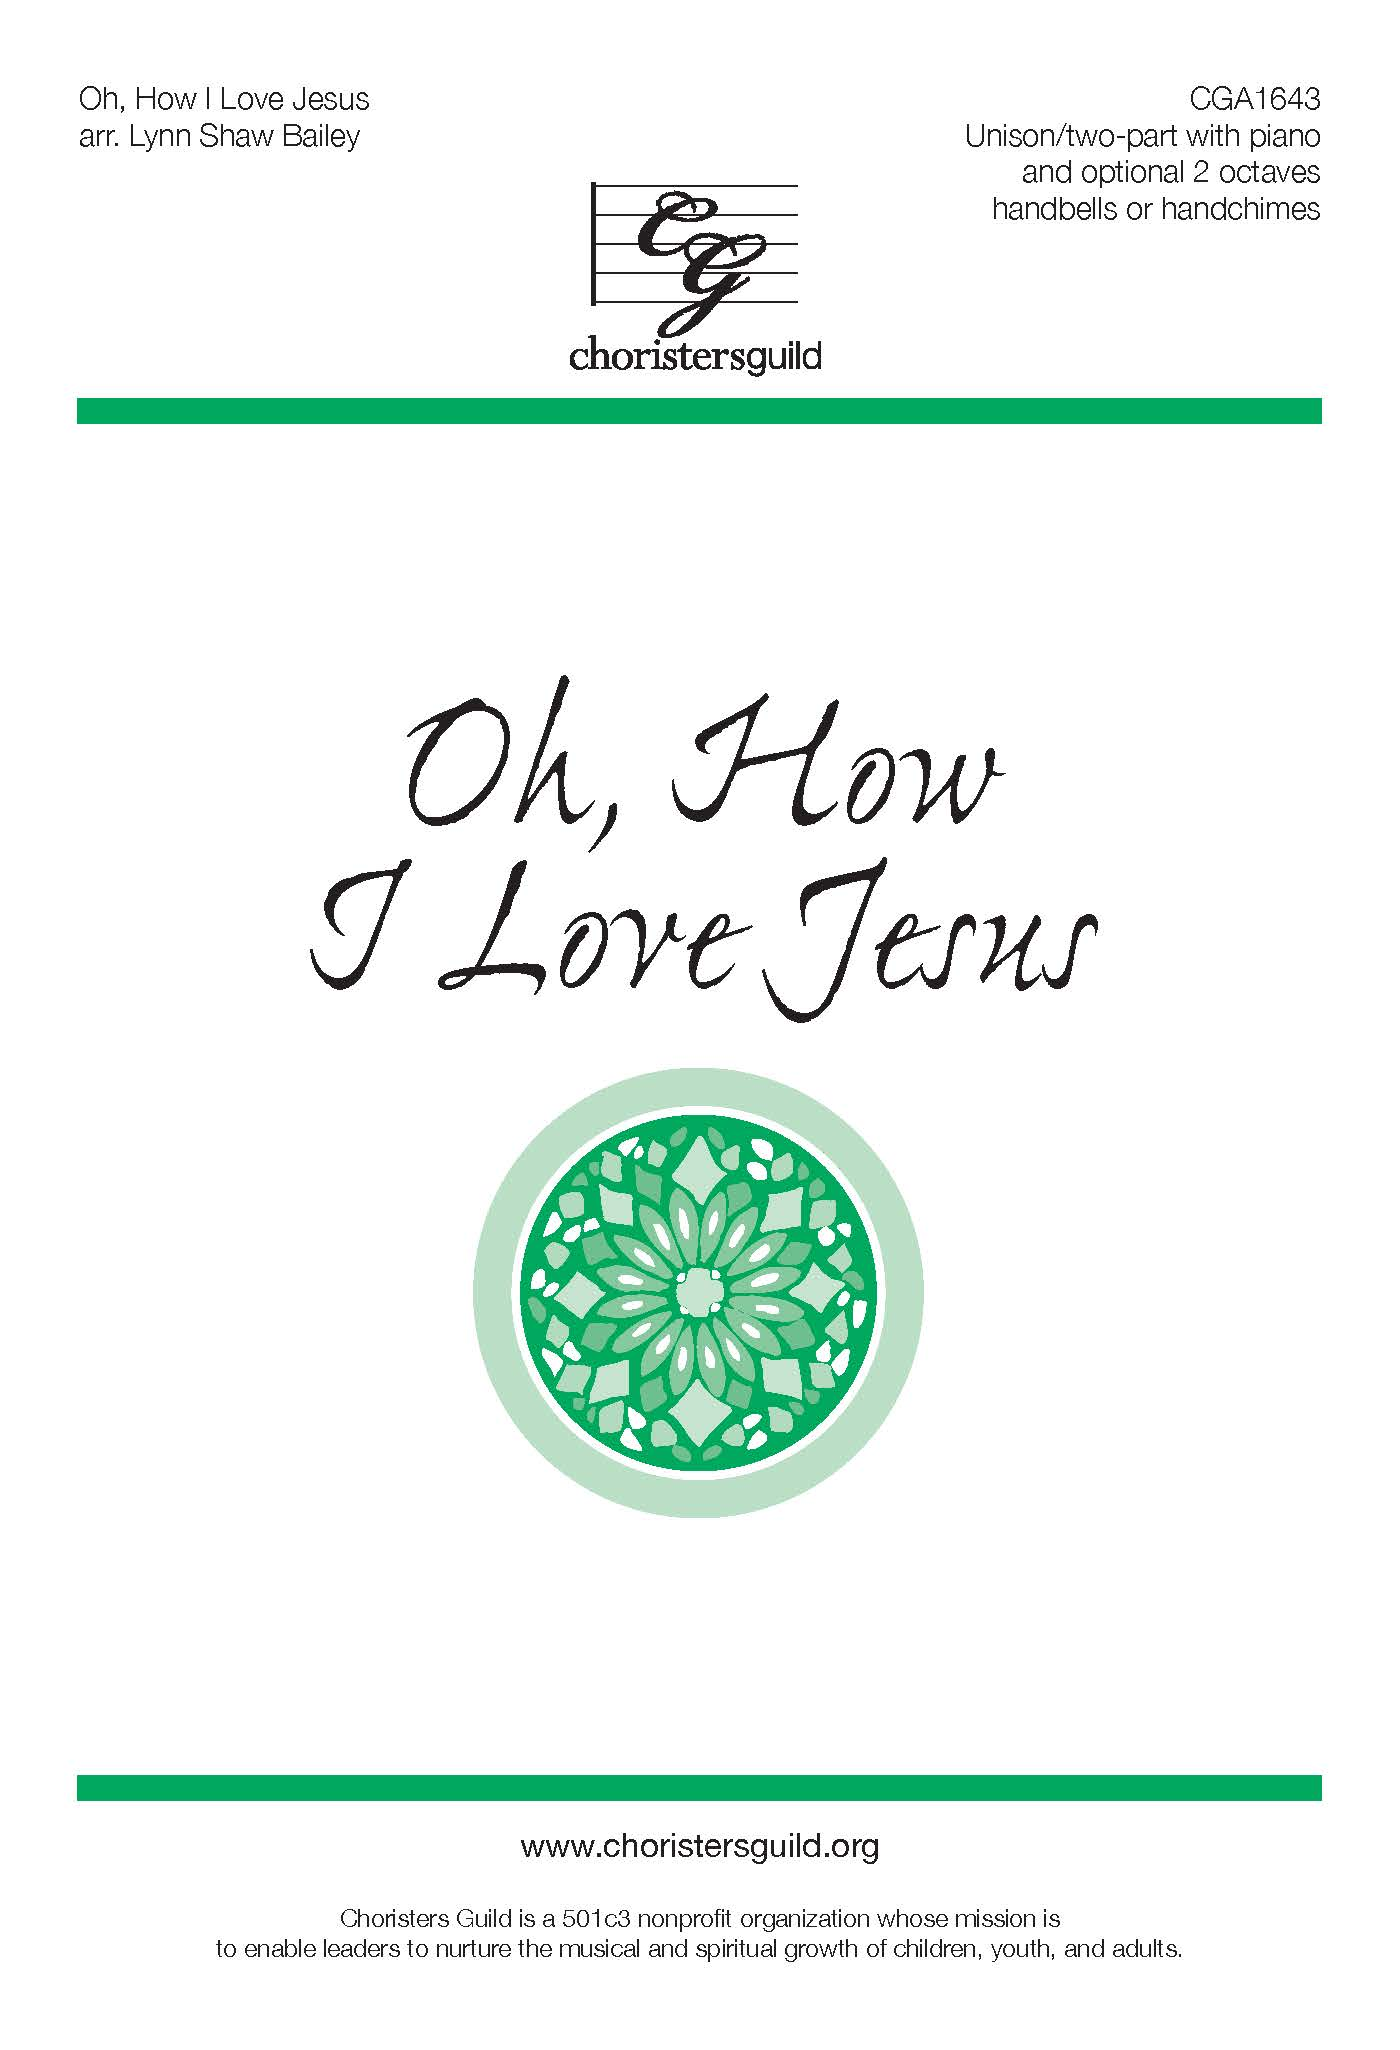 Oh, How I Love Jesus - Unison/Two-part